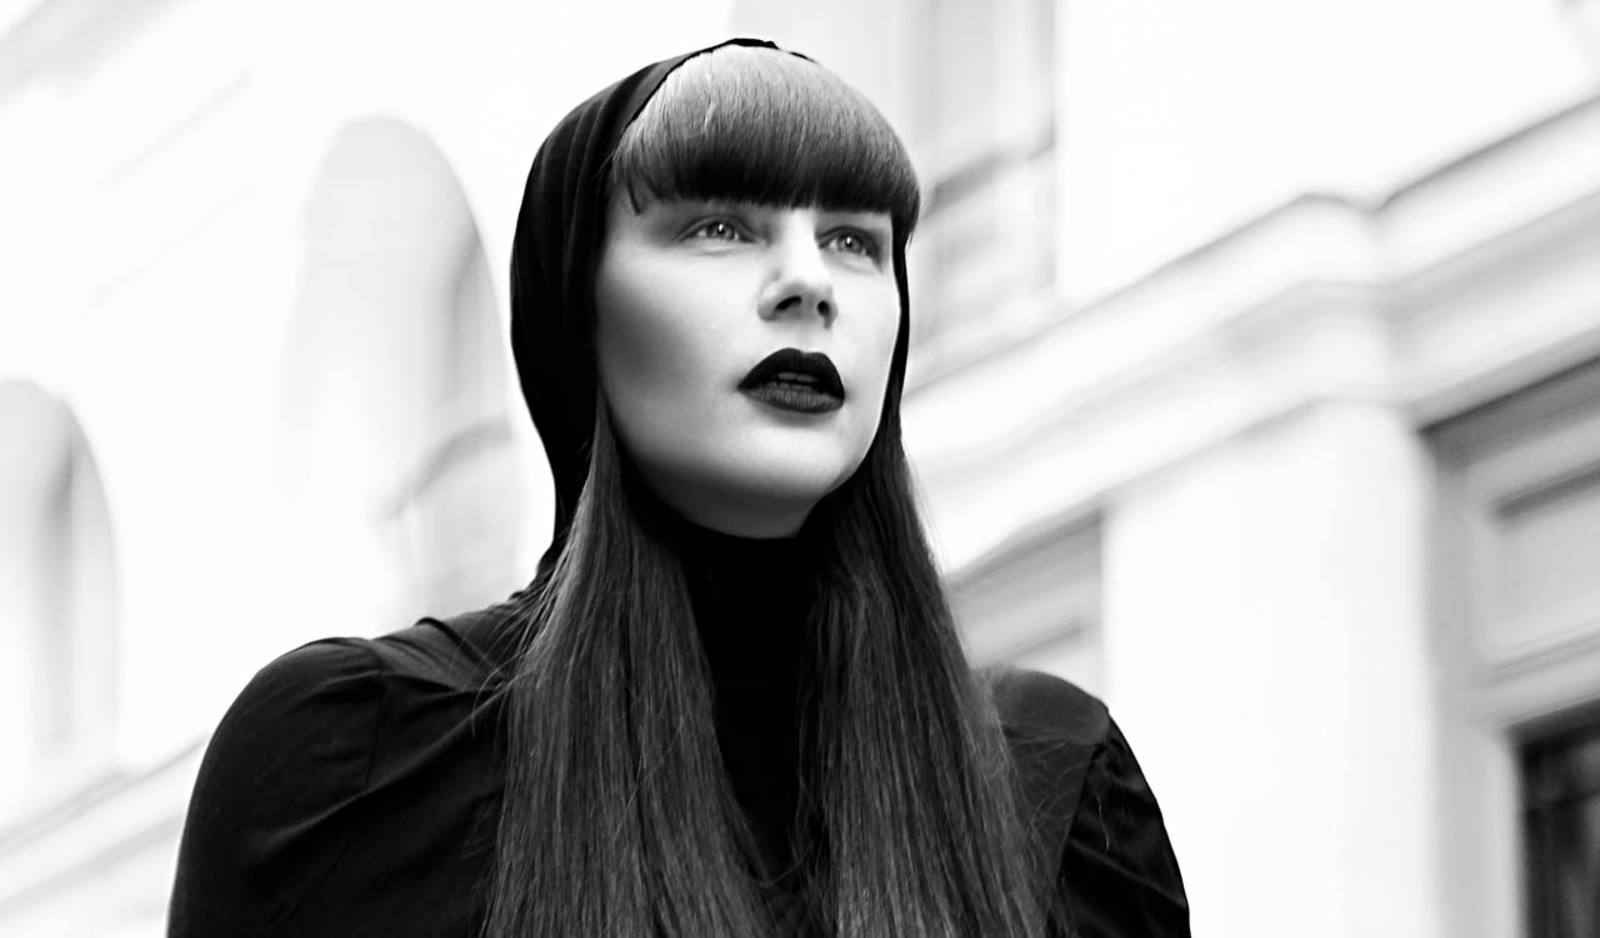 - « SexCells is an open place for each individual who can be who he wants to be, no matter of age, race, gender, sexuality. Values I always defended and more precious than ever »MISS KITTIN